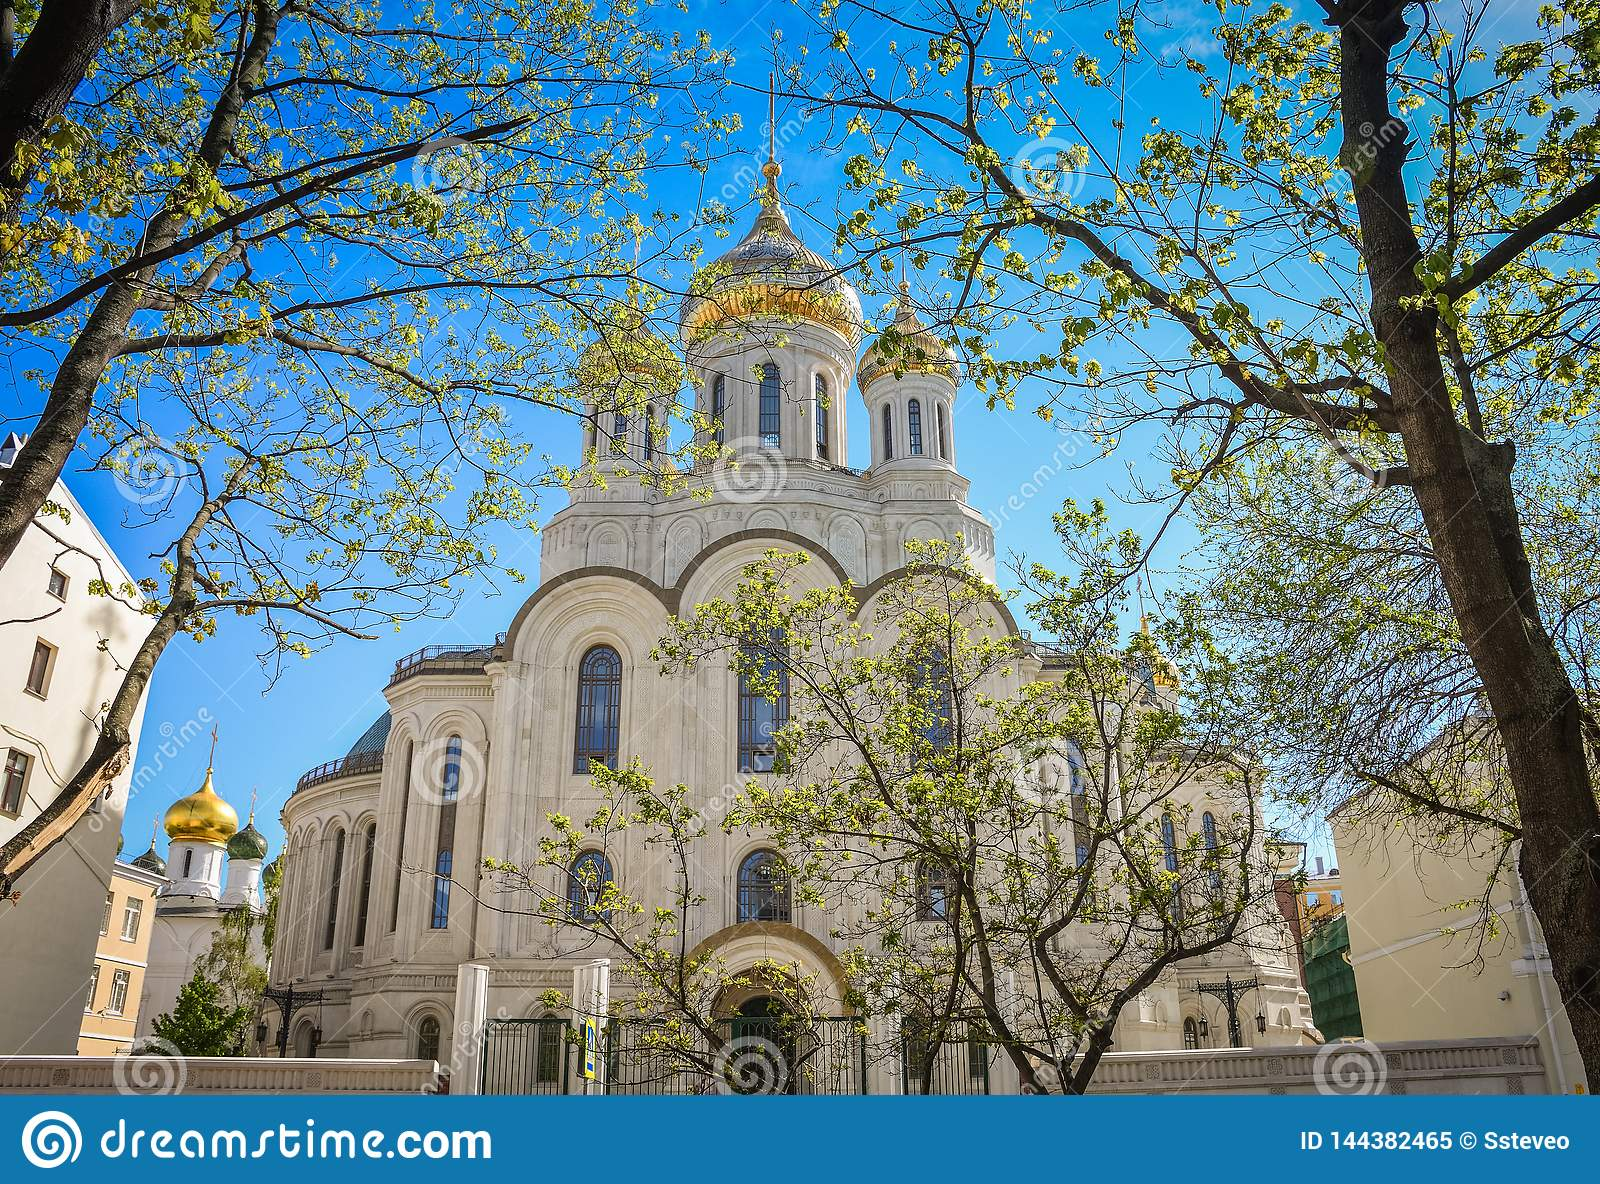 Church with golden domes in the sunlight among trees